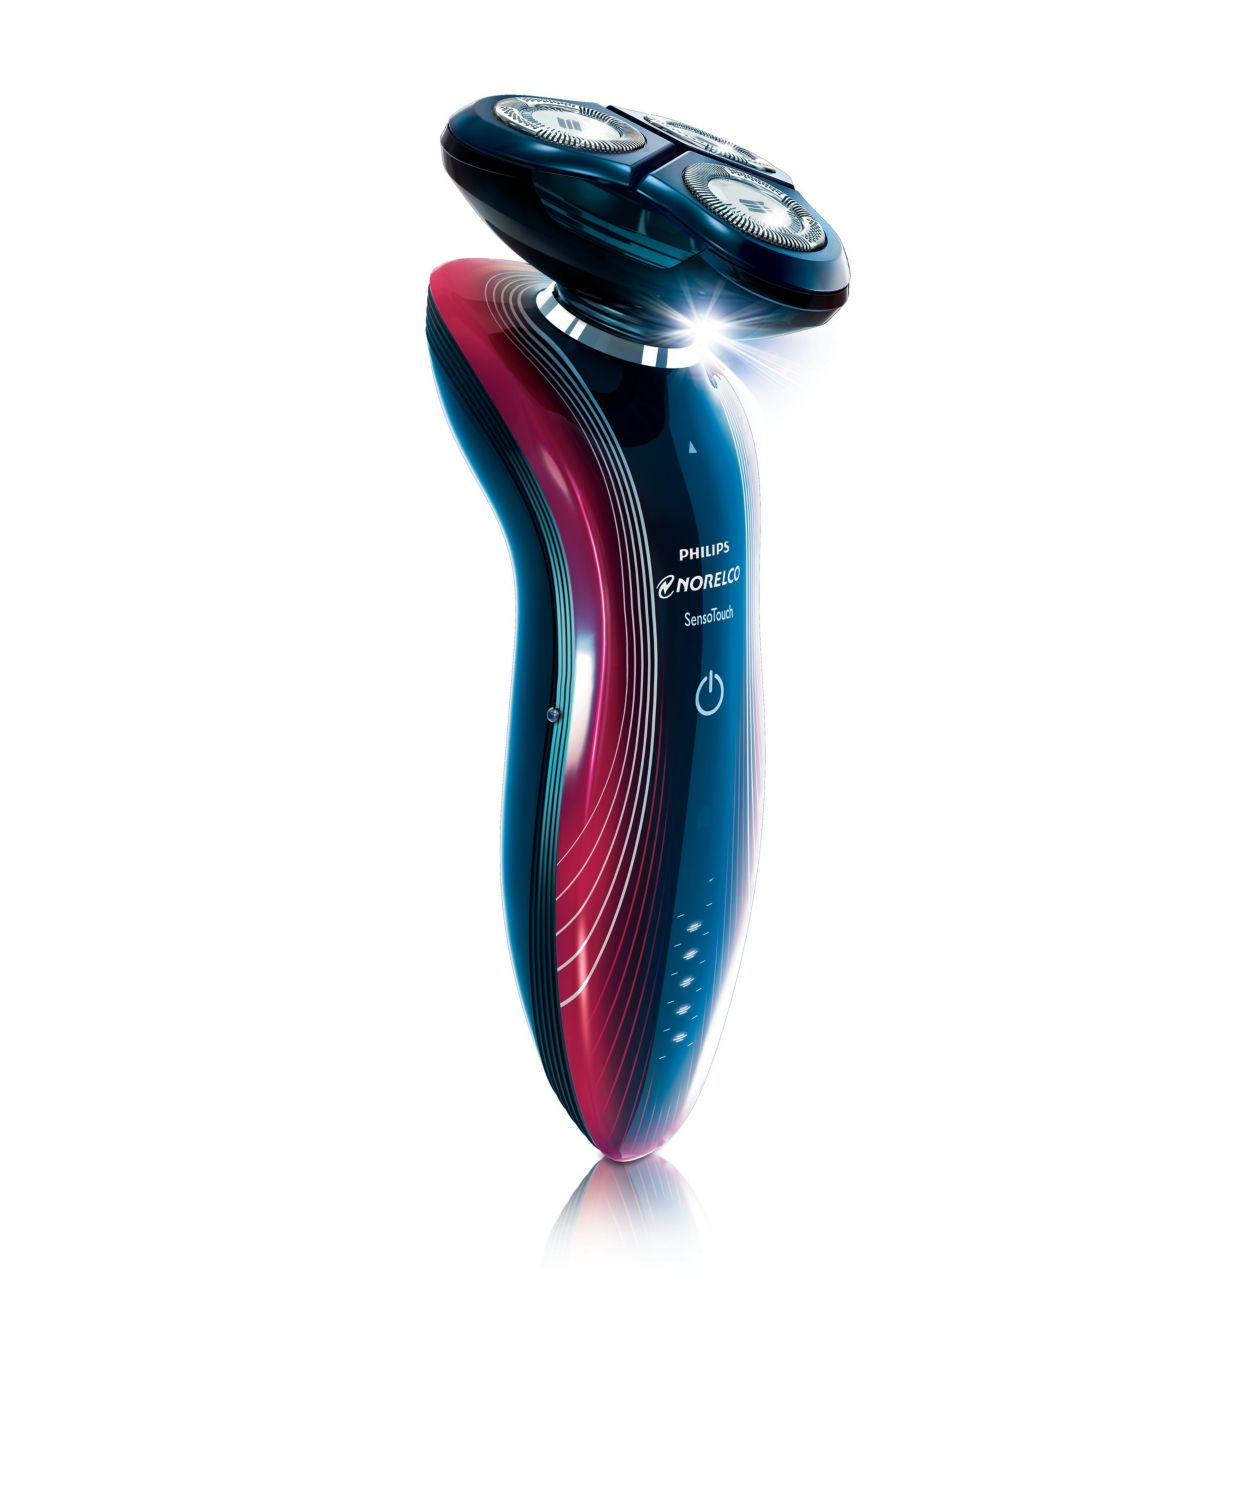 Series 6000 - Soft touch, smooth shave